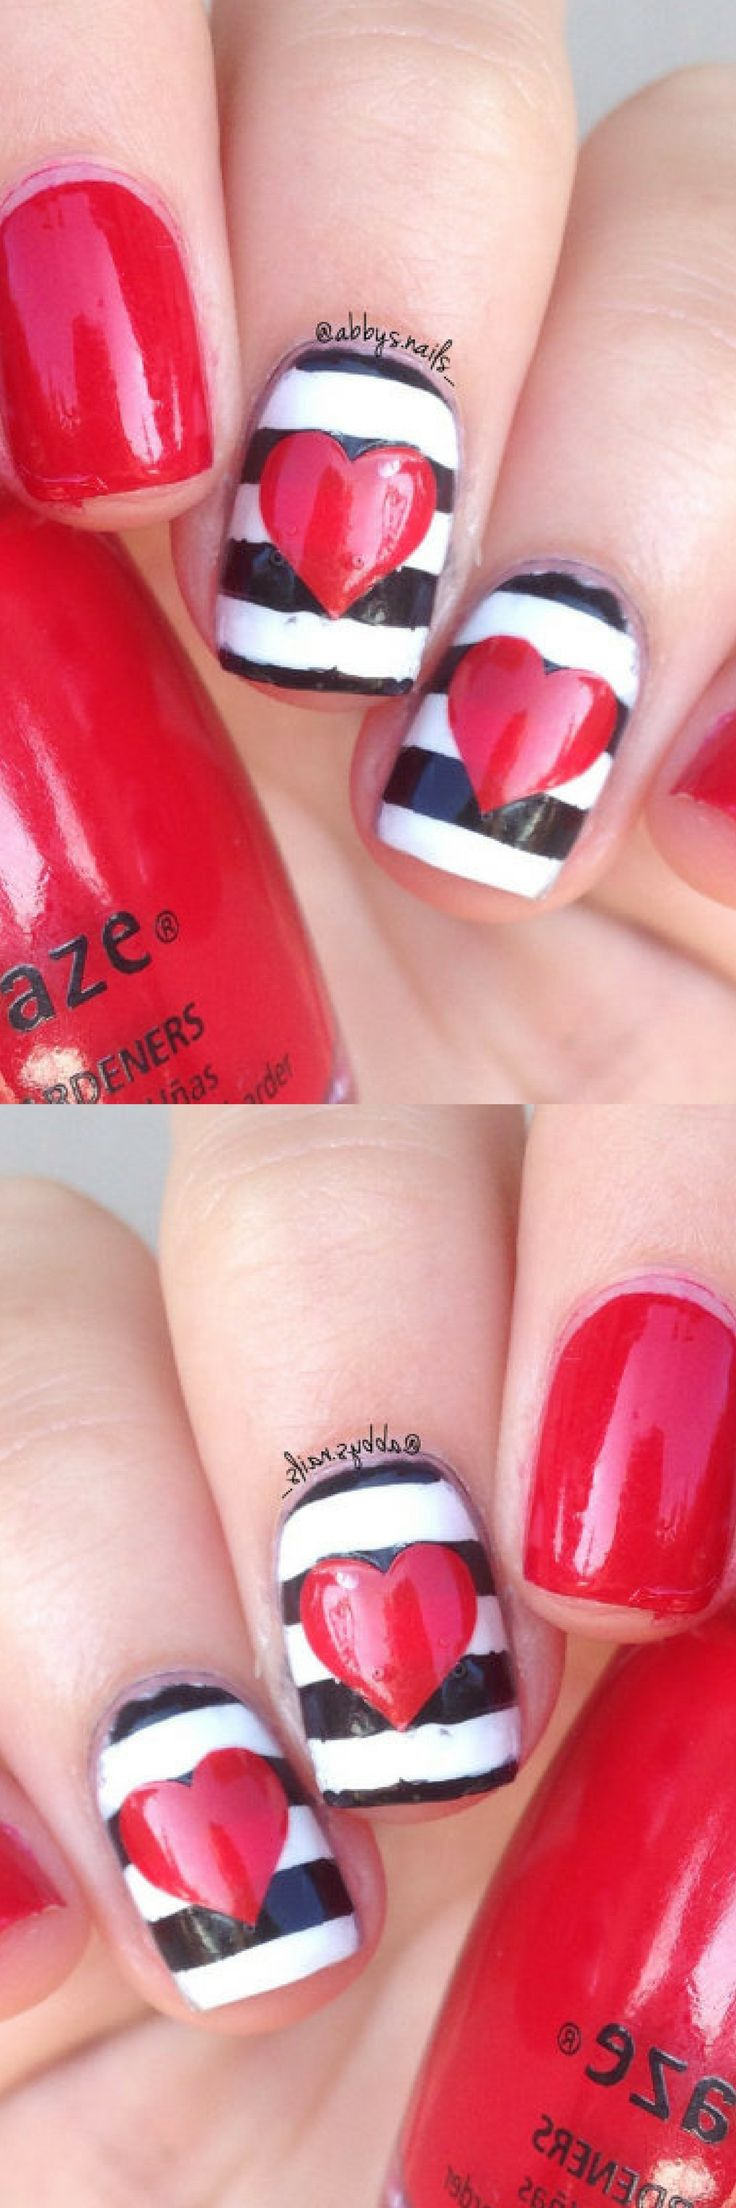 These are super cute!!!!! Heart Nail Art Stencil/Decal Vinyl    #valentinesnails #ad #nailart #naildesigns